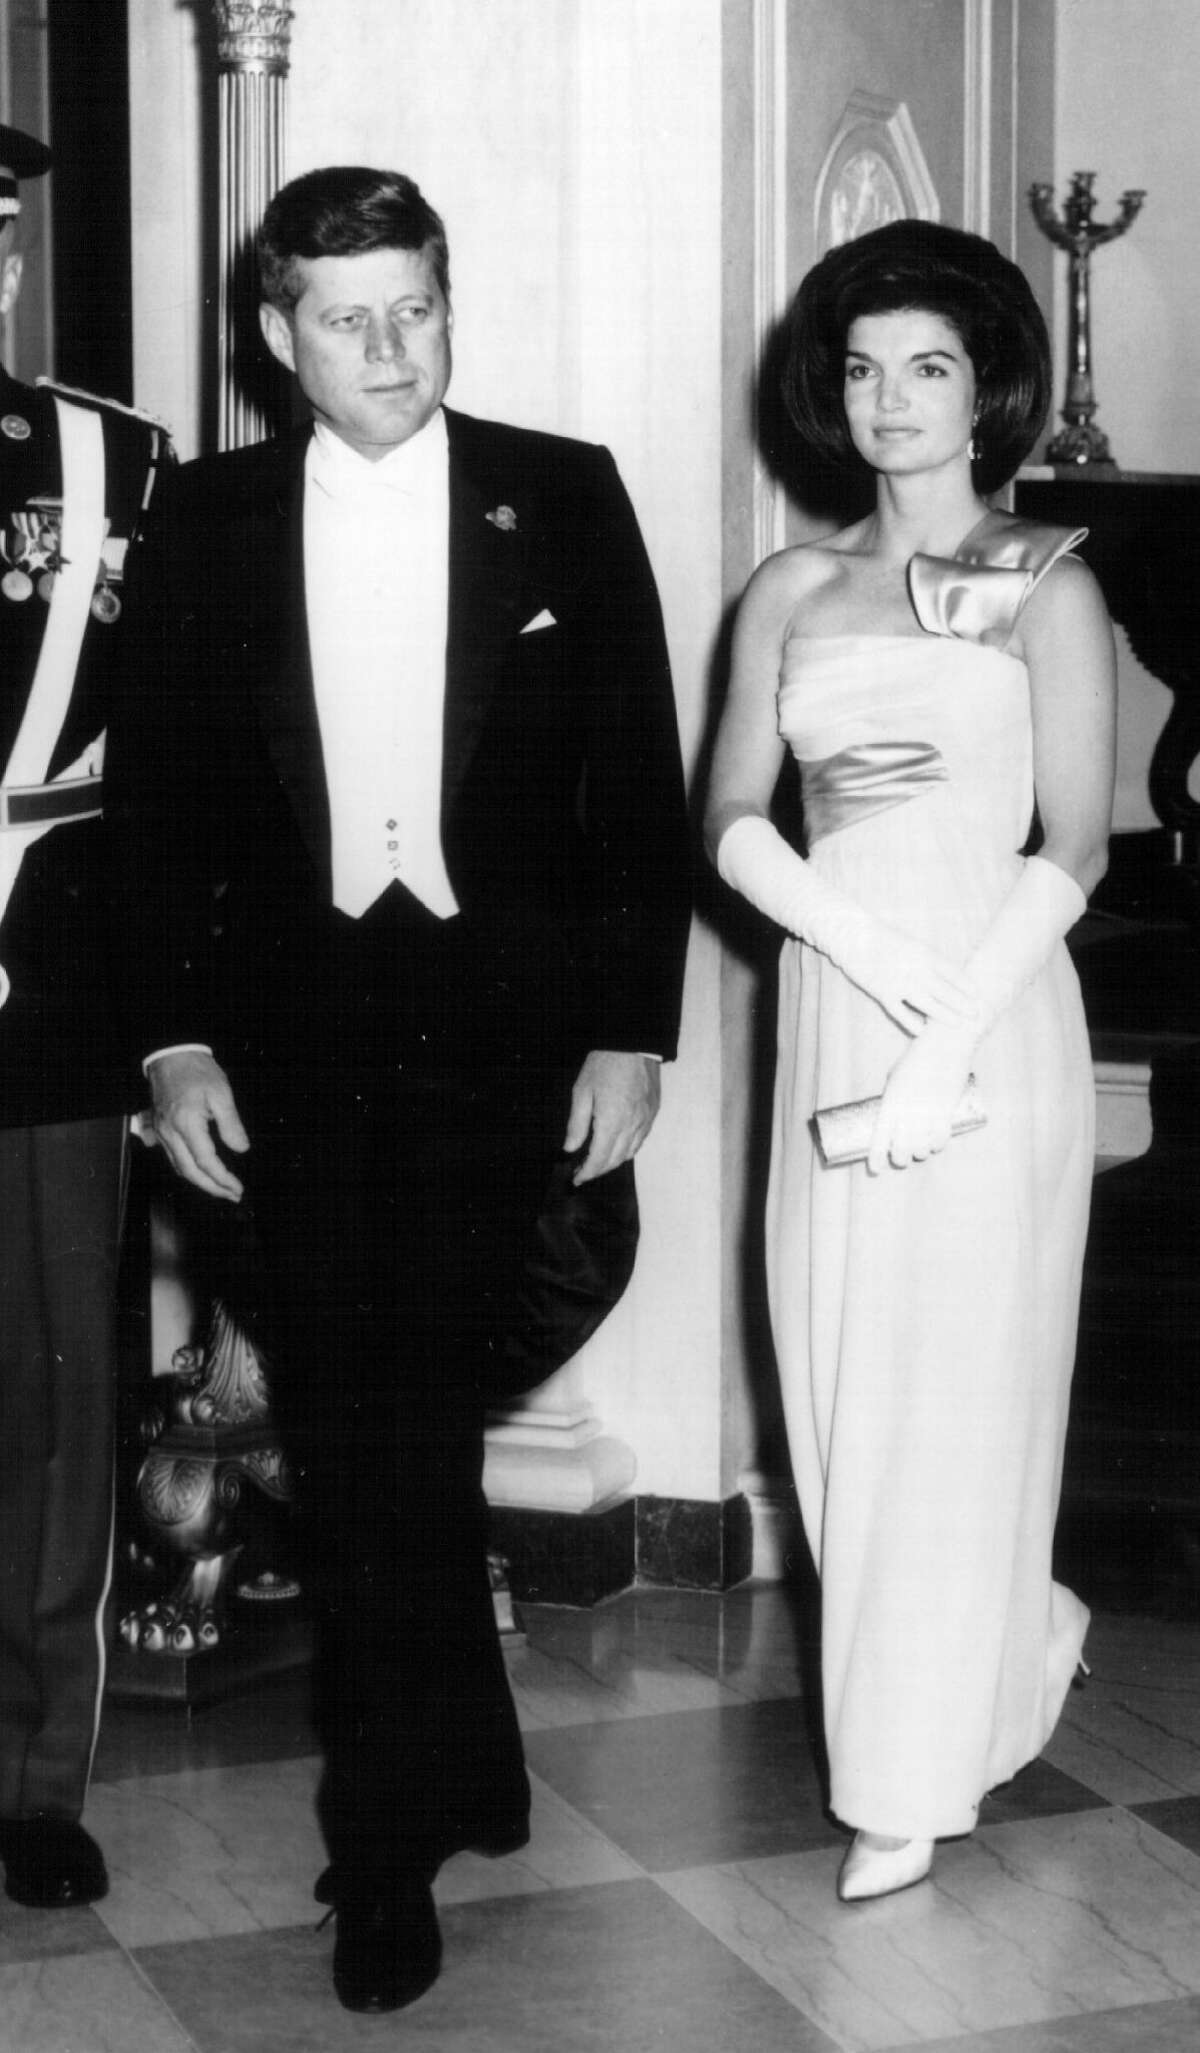 President John F. Kennedy and First Lady Jackie Kennedy attend a White House Ceremony in January 1963.